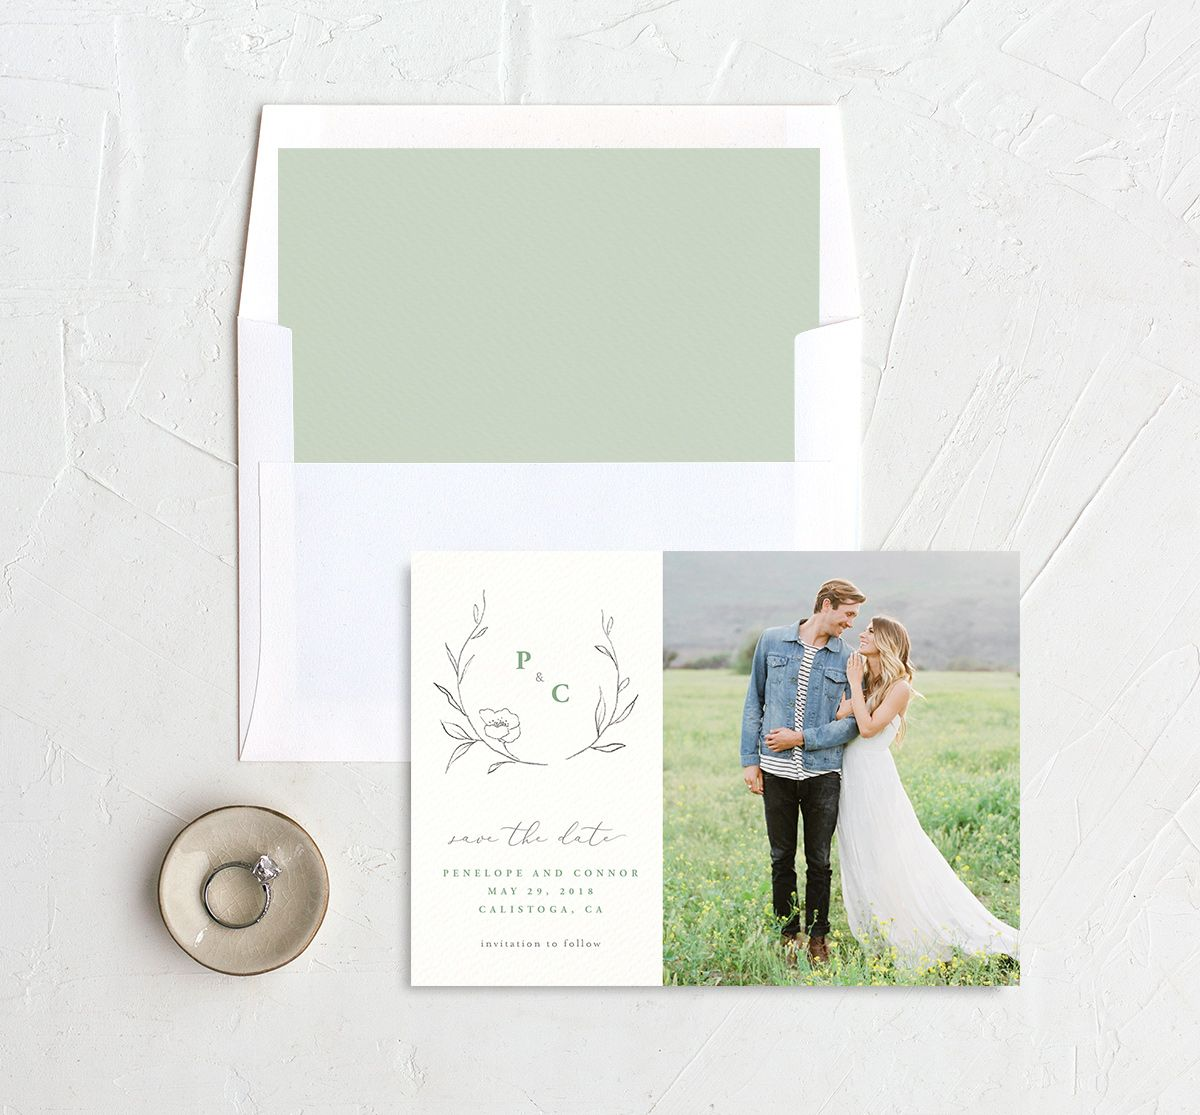 graceful botanical photo save the date cards in green with envelope liner